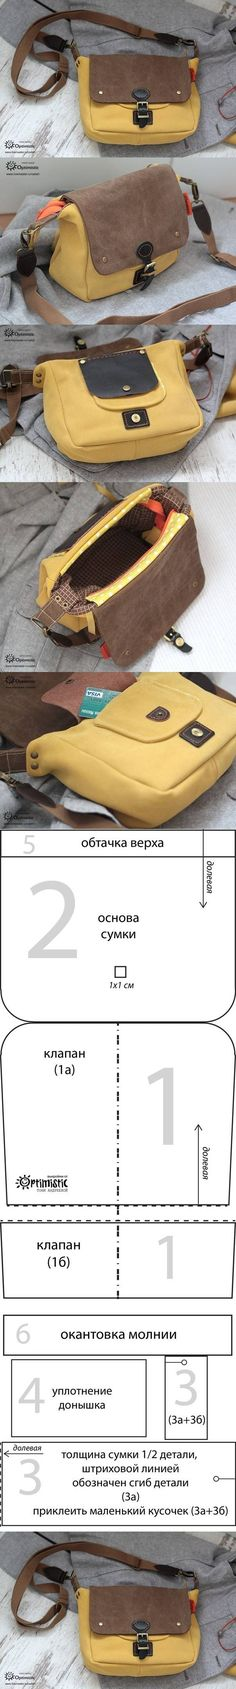 DIY Sew Handbag Pattern Pictures, Photos, and Images for Facebook, Tumblr, Pinterest, and Twitter